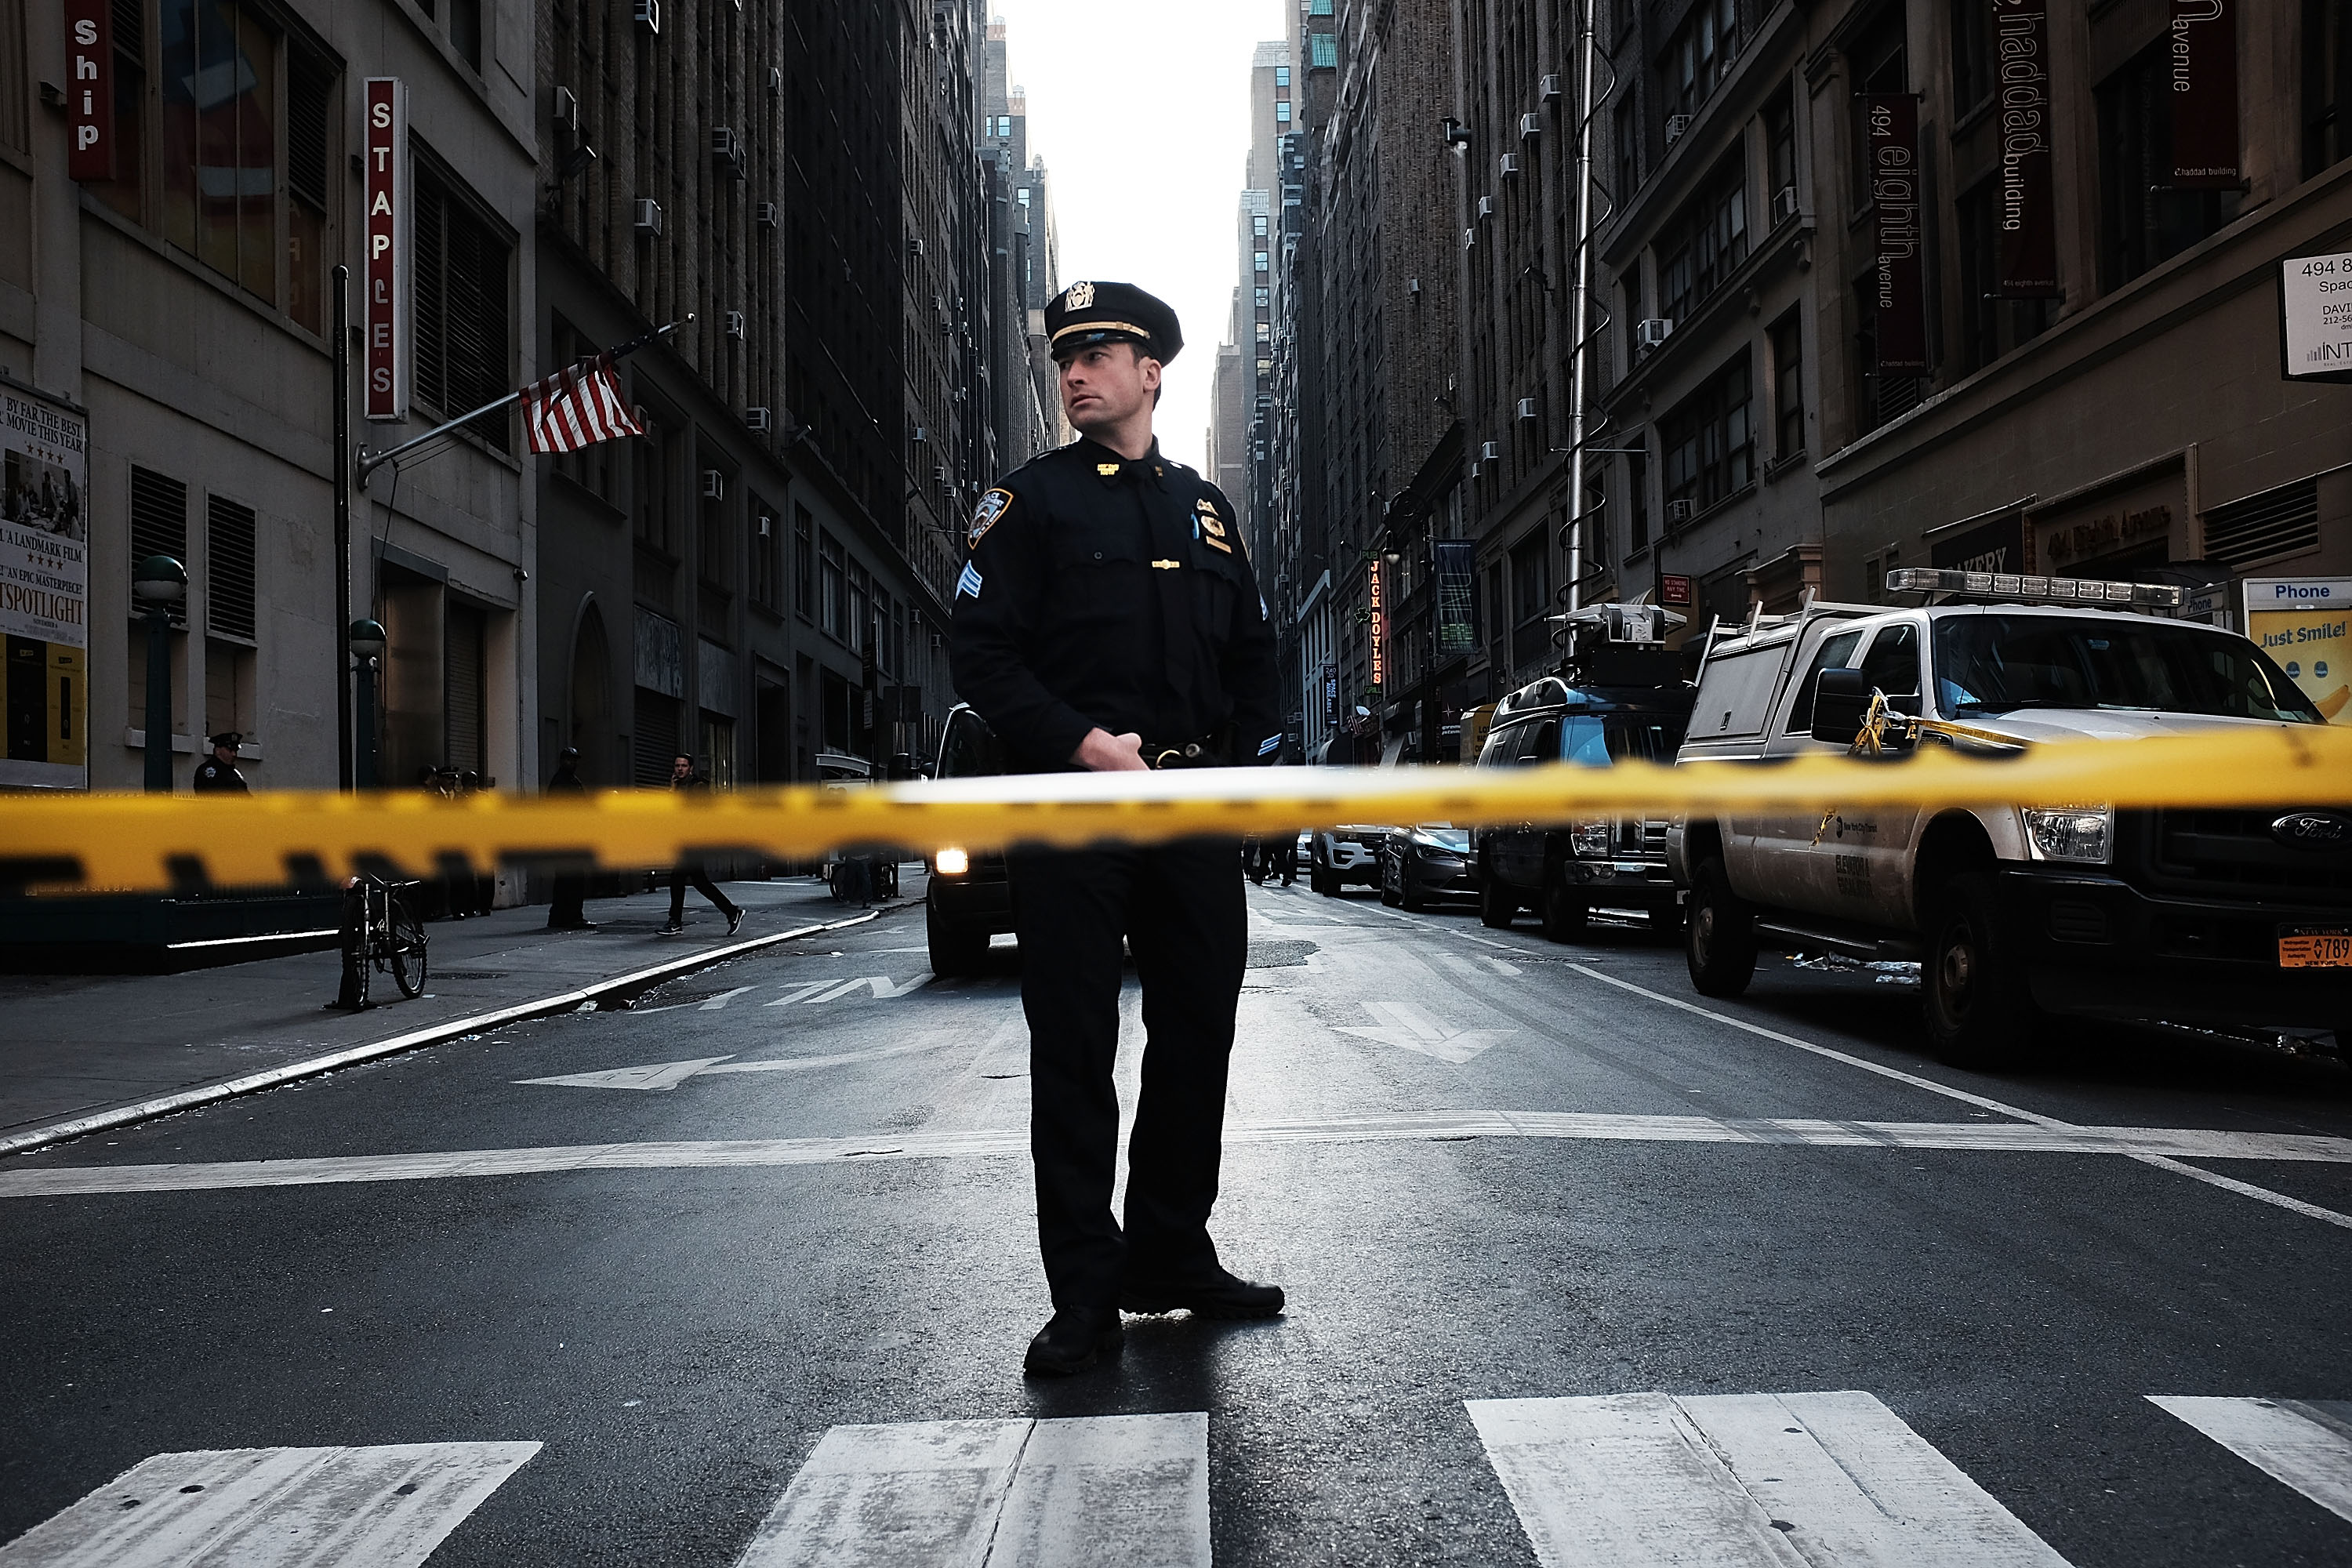 The Cop: America's Ethical Guardian